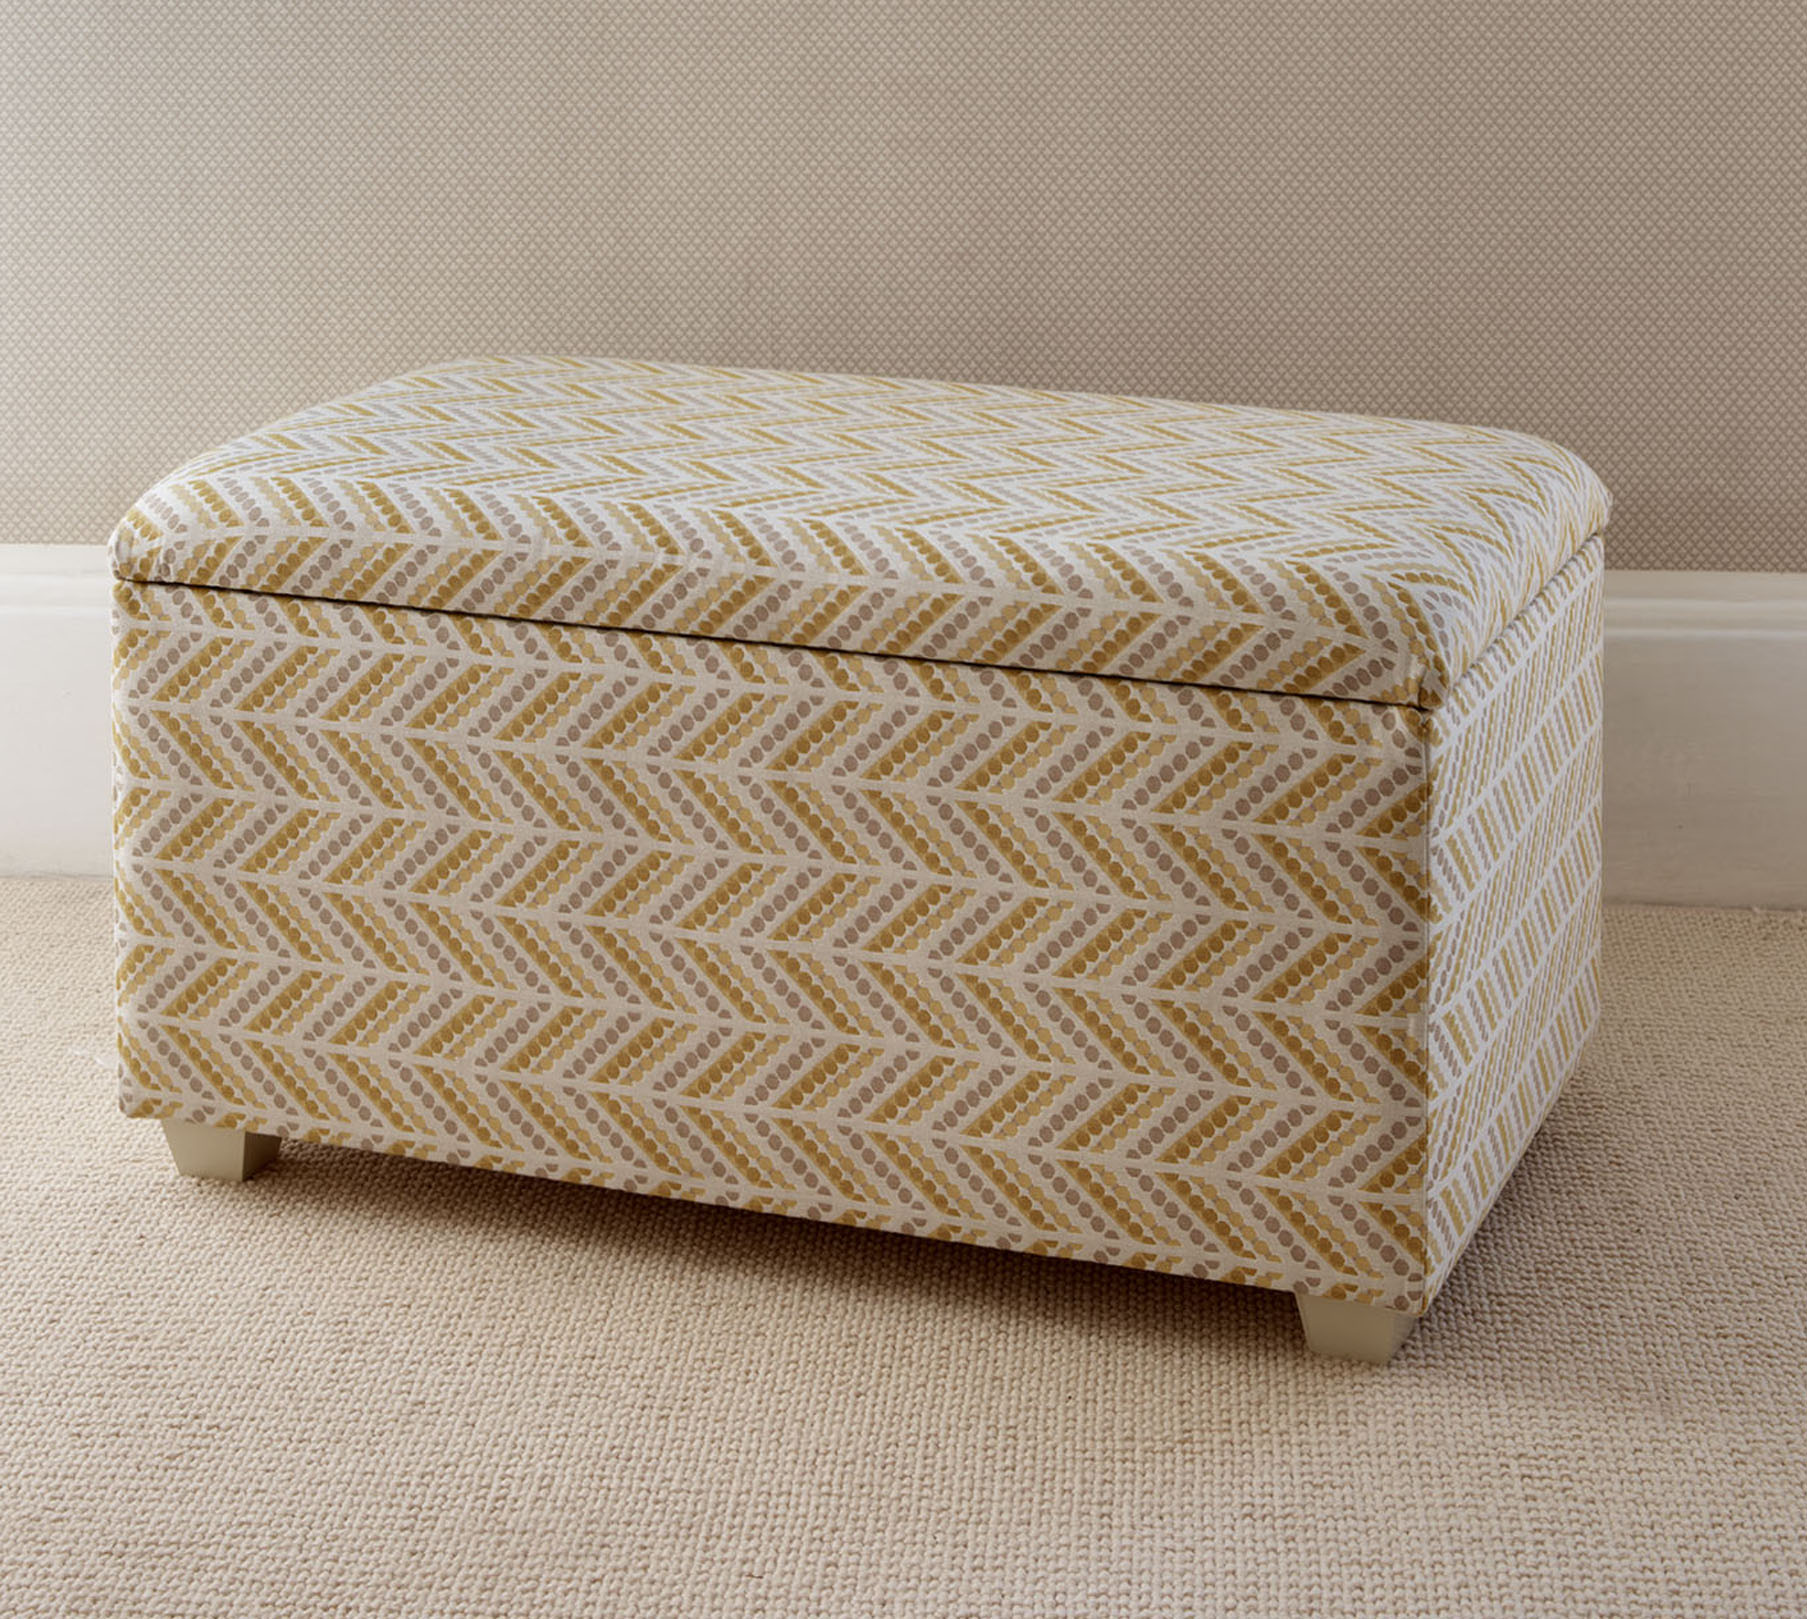 Storage Cubes Ottoman | Storage Cube Ottoman | Upholstered Storage Cube